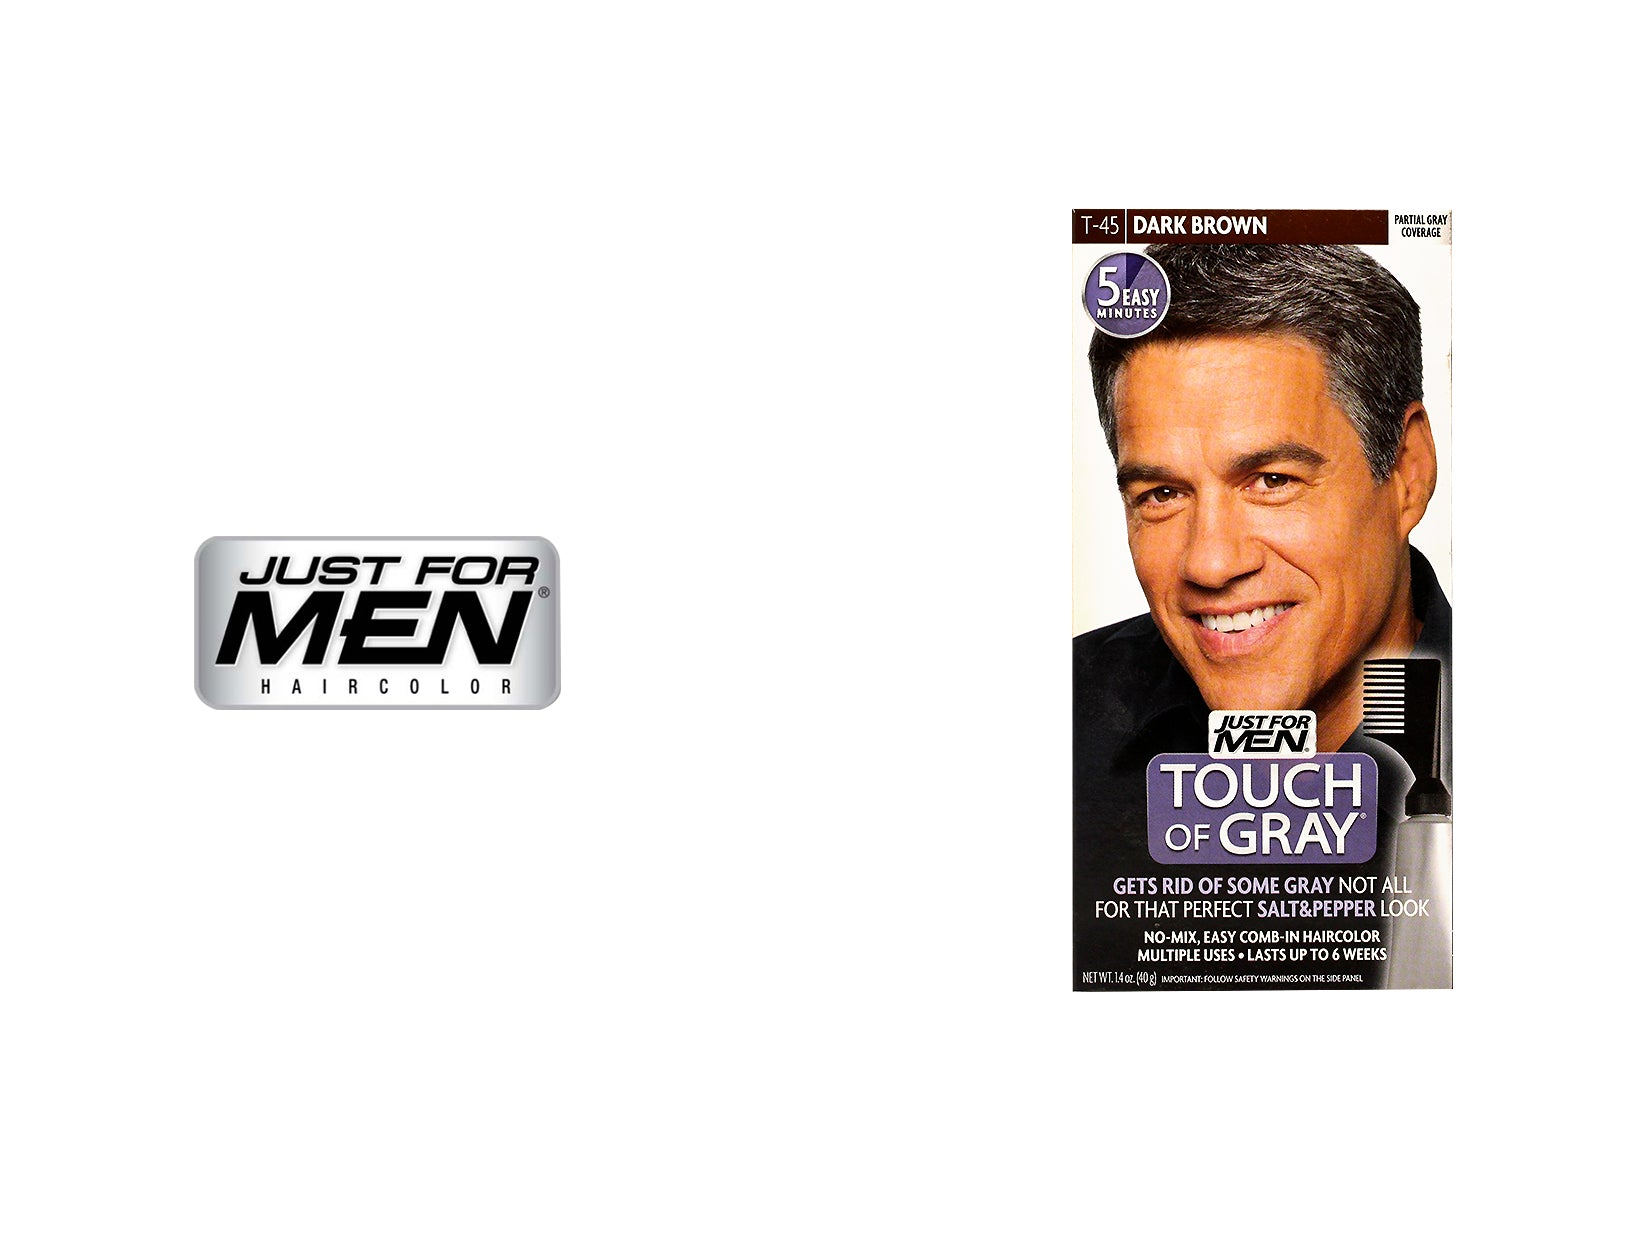 Just for men t 45